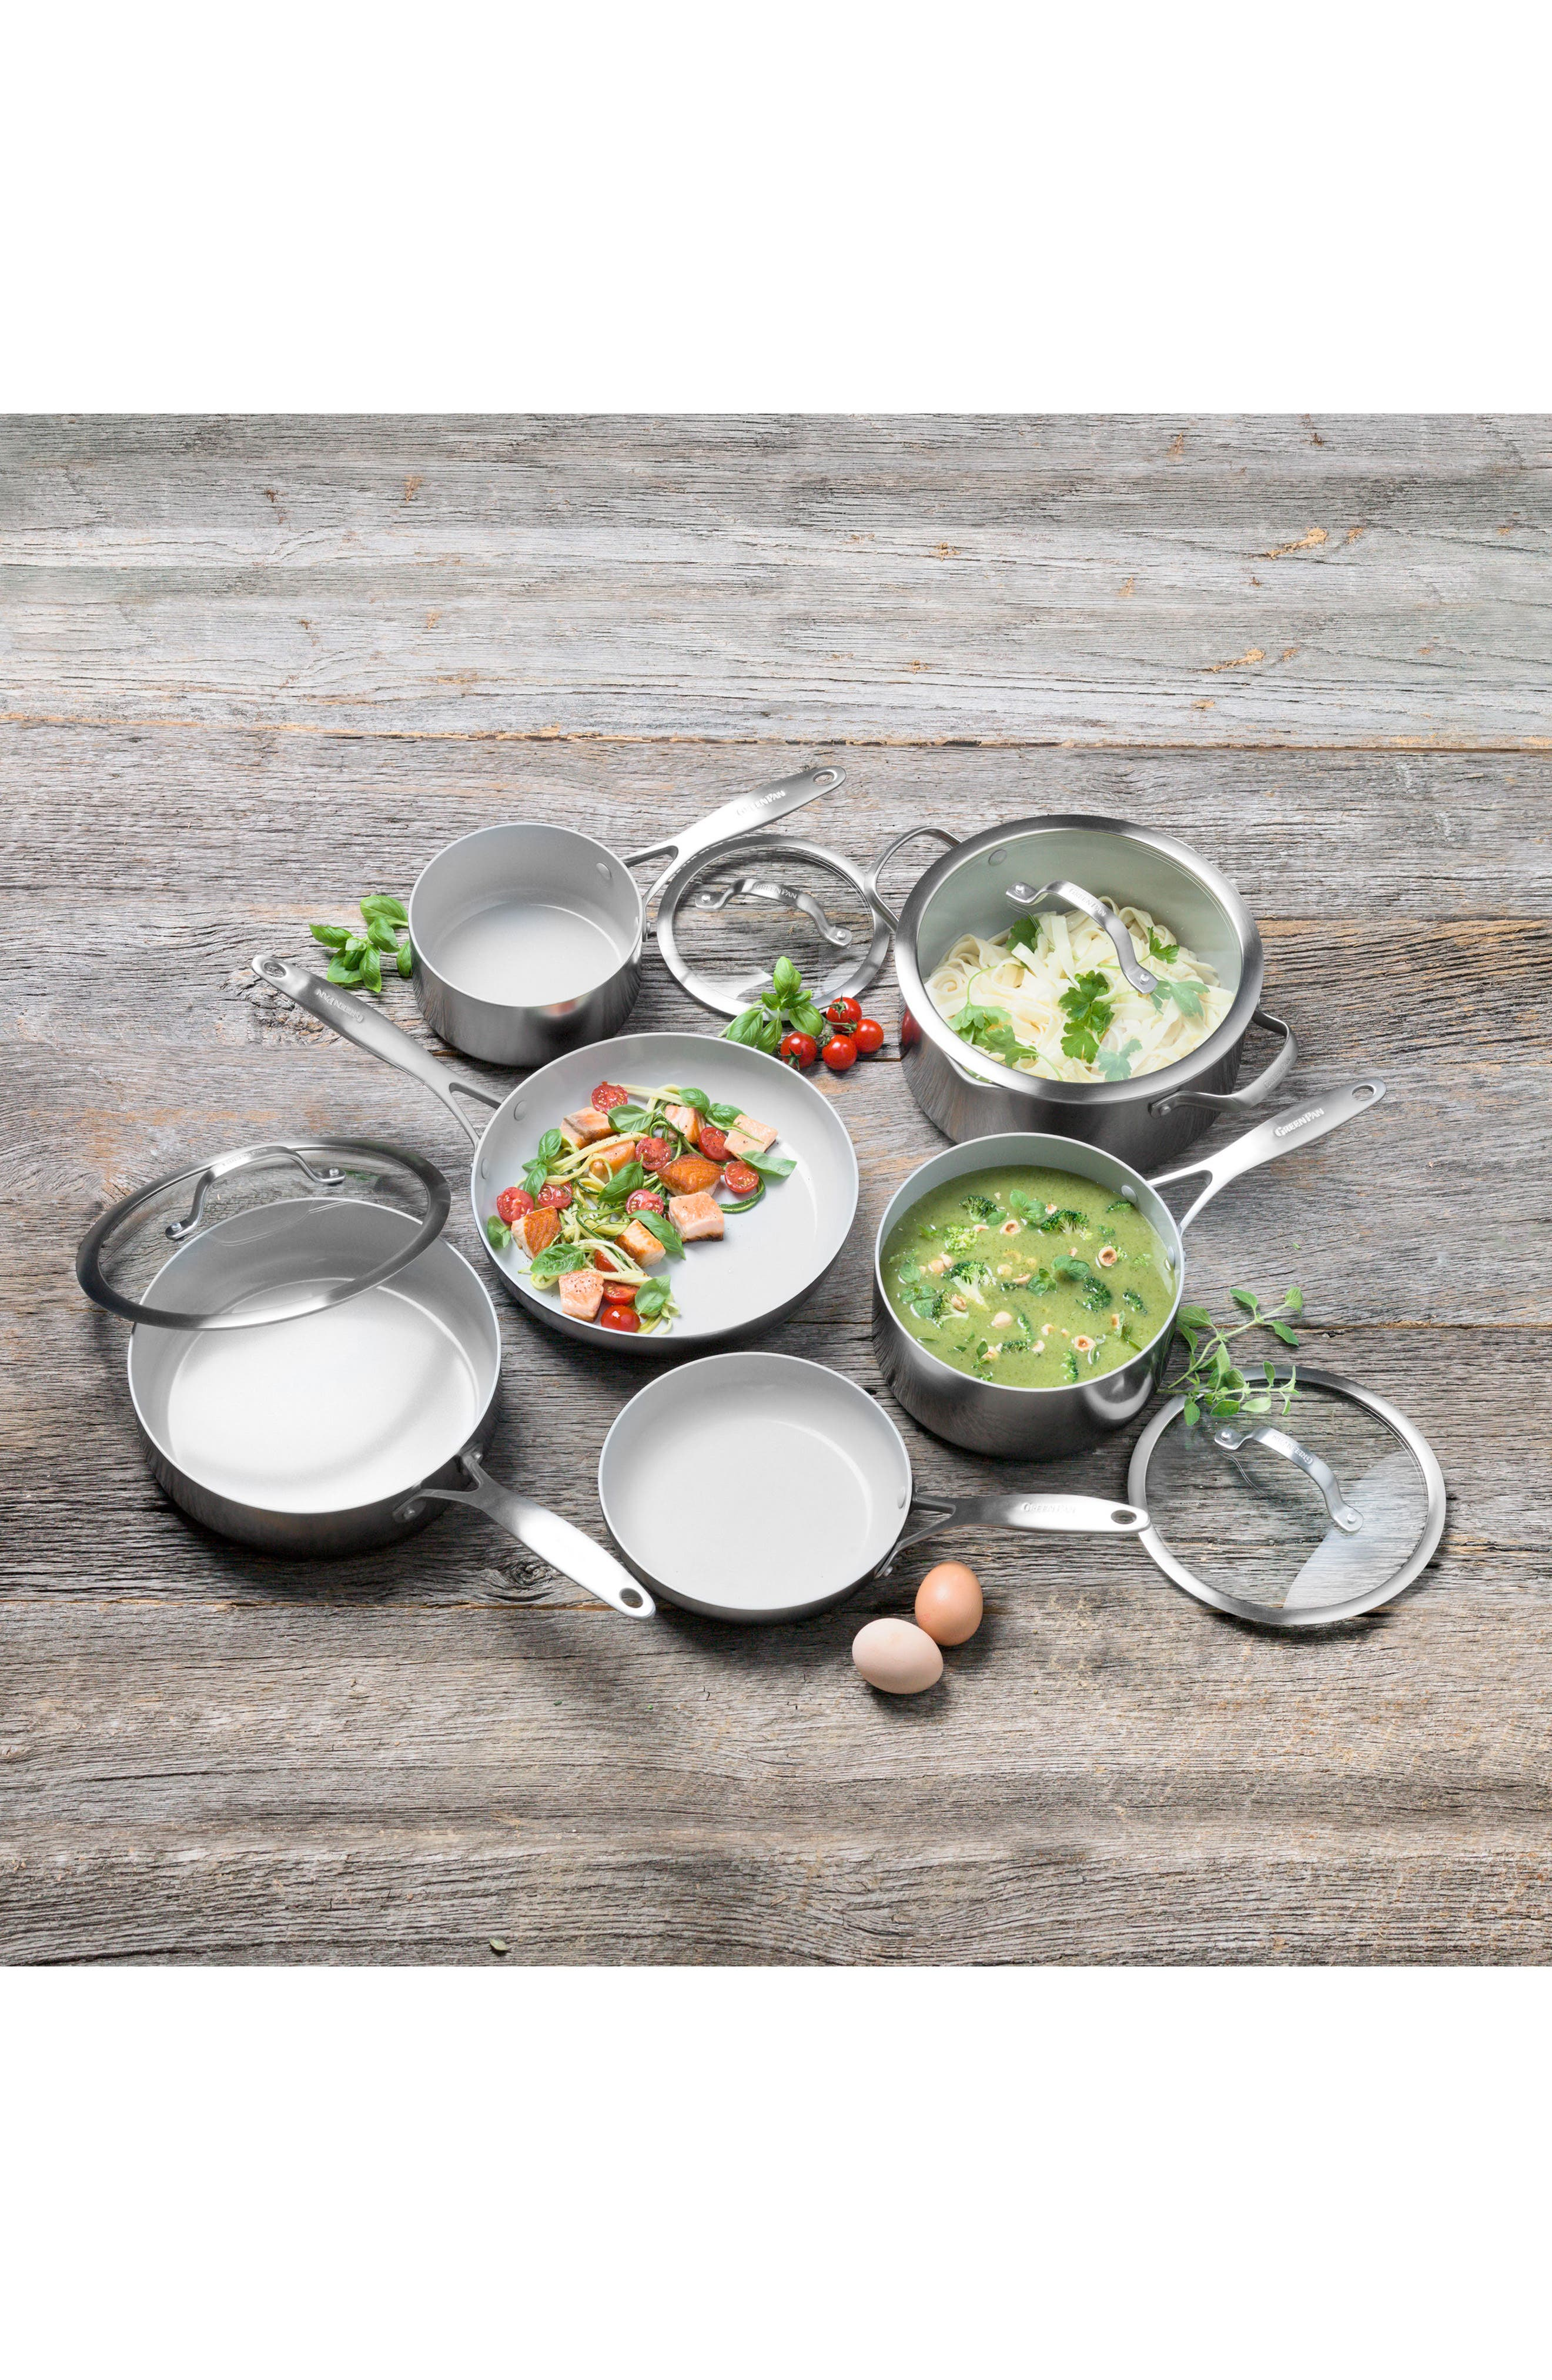 GREENPAN, Venice Pro 10-Piece Multilayer Stainless Steel Ceramic Nonstick Cookware Set, Alternate thumbnail 4, color, STAINLESS STEEL